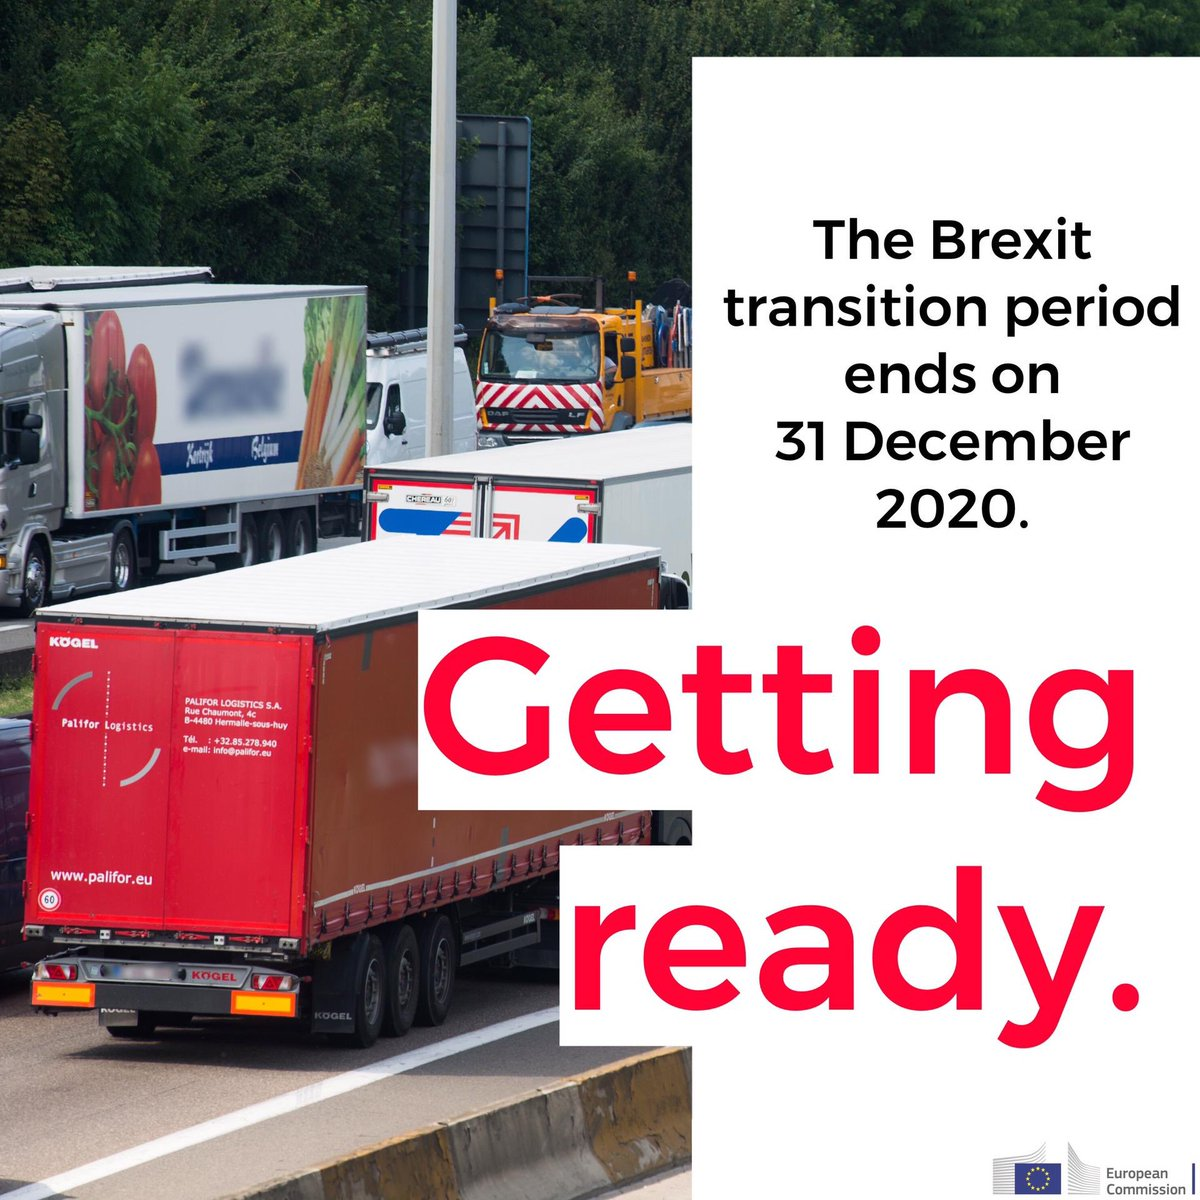 The #Brexit transition ends 31.12.2020. In 5 months, 🇬🇧 leaves 🇪🇺 Single Market and Customs Union.   Changes are inevitable, with or without agreement on the new partnership. Companies and citizens must get ready.   Find guidance from @EU_Commission here